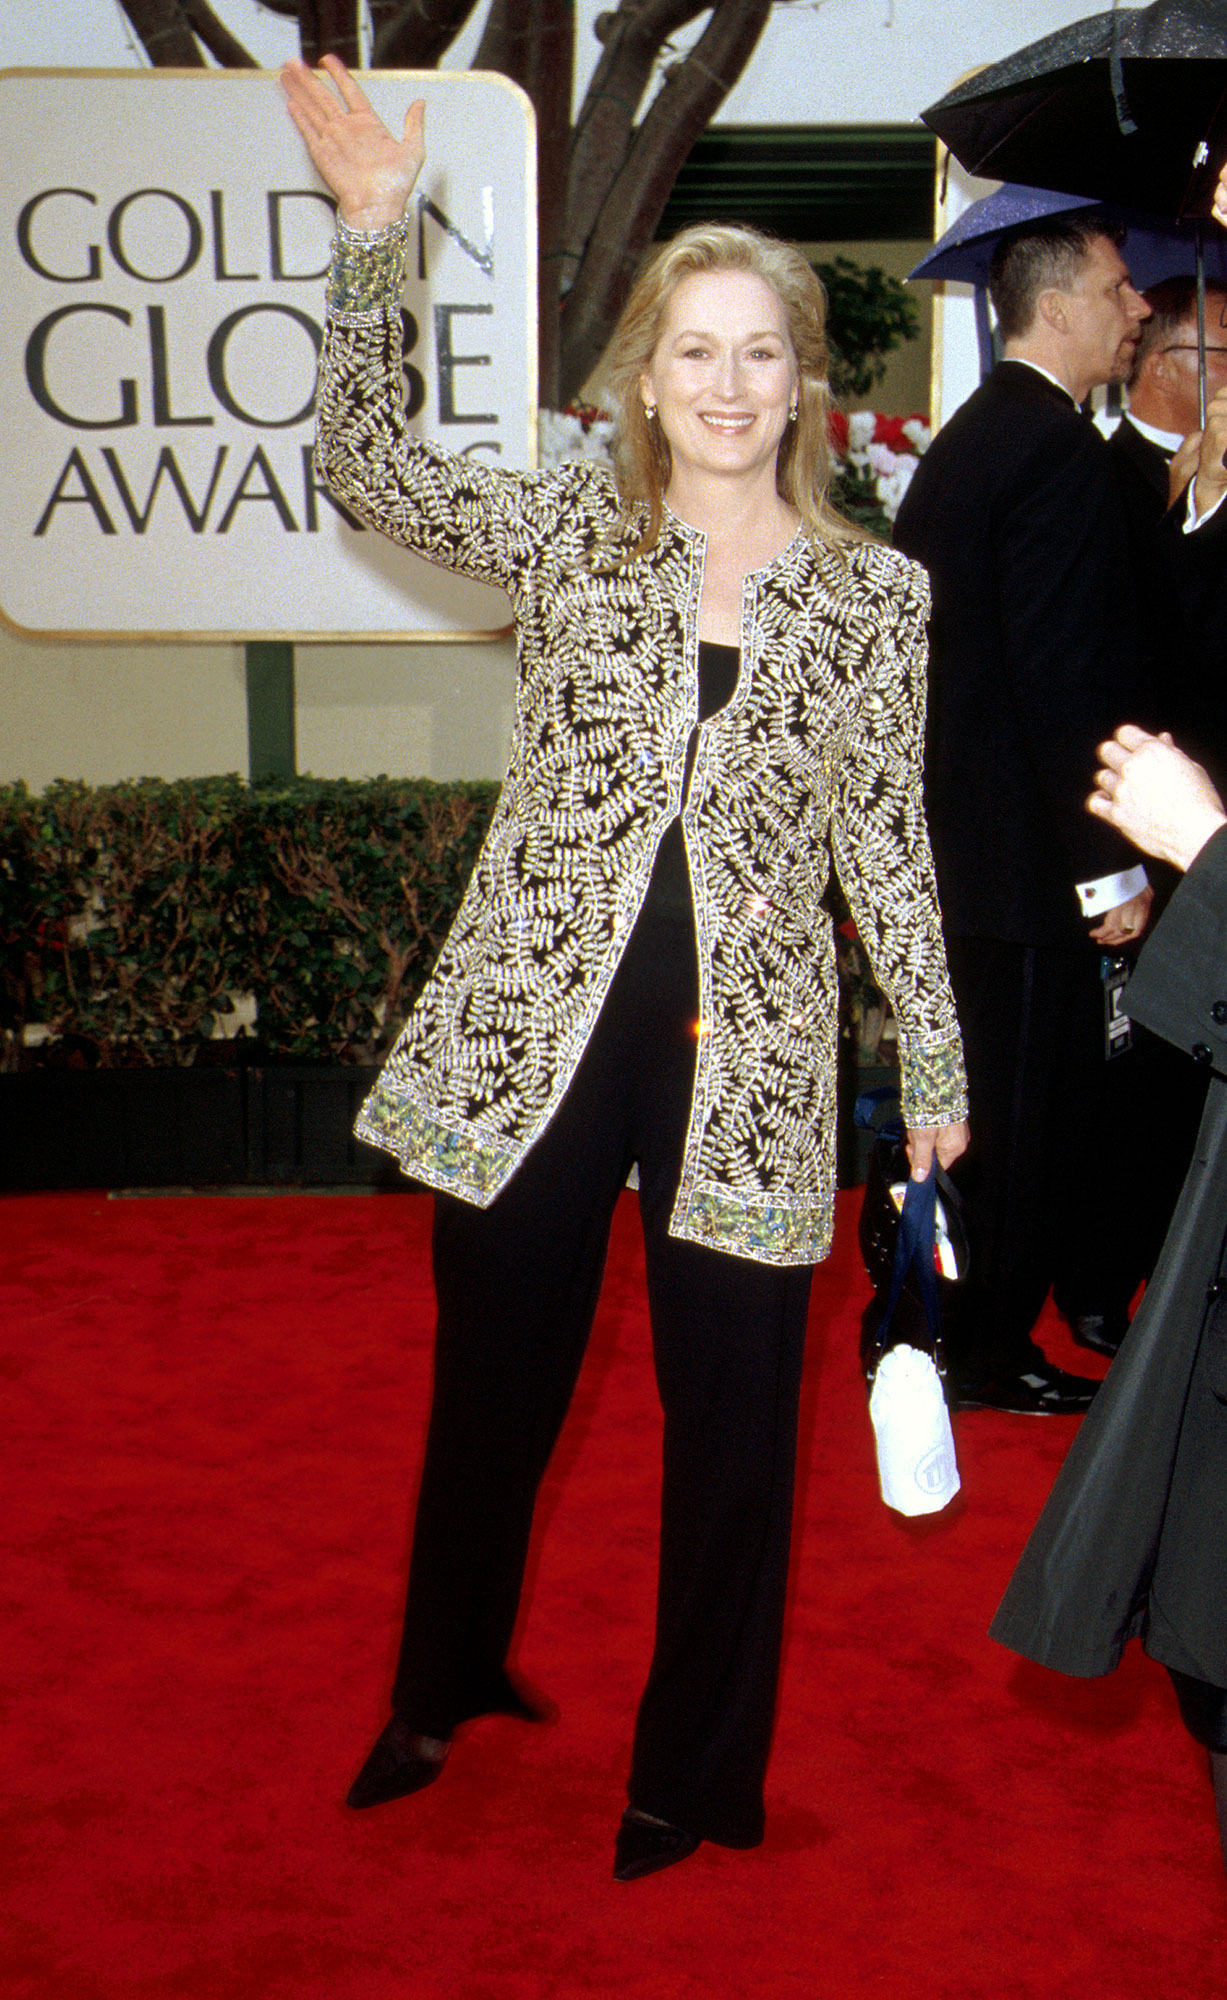 "Meryl Streep 57th Golden Globes - 96 Normal 0 false false false EN-US X-NONE X-NONE /* Style Definitions */ table. MsoNormalTable {mso-style-name:""Table Normal""; mso-tstyle-rowband-size:0; mso-tstyle-colband-size:0; mso-style-noshow:yes; mso-style-priority:99; mso-style-parent:""""; mso-padding-alt:0in 5.4pt 0in 5.4pt; mso-para-margin:0in; mso-para-margin-bottom:.0001pt; mso-pagination:widow-orphan; font-size:12.0pt; font-family:Calibri; mso-ascii-font-family:Calibri; mso-ascii-theme-font:minor-latin; mso-hansi-font-family:Calibri; mso-hansi-theme-font:minor-latin;} What's an awards show without Streep?"